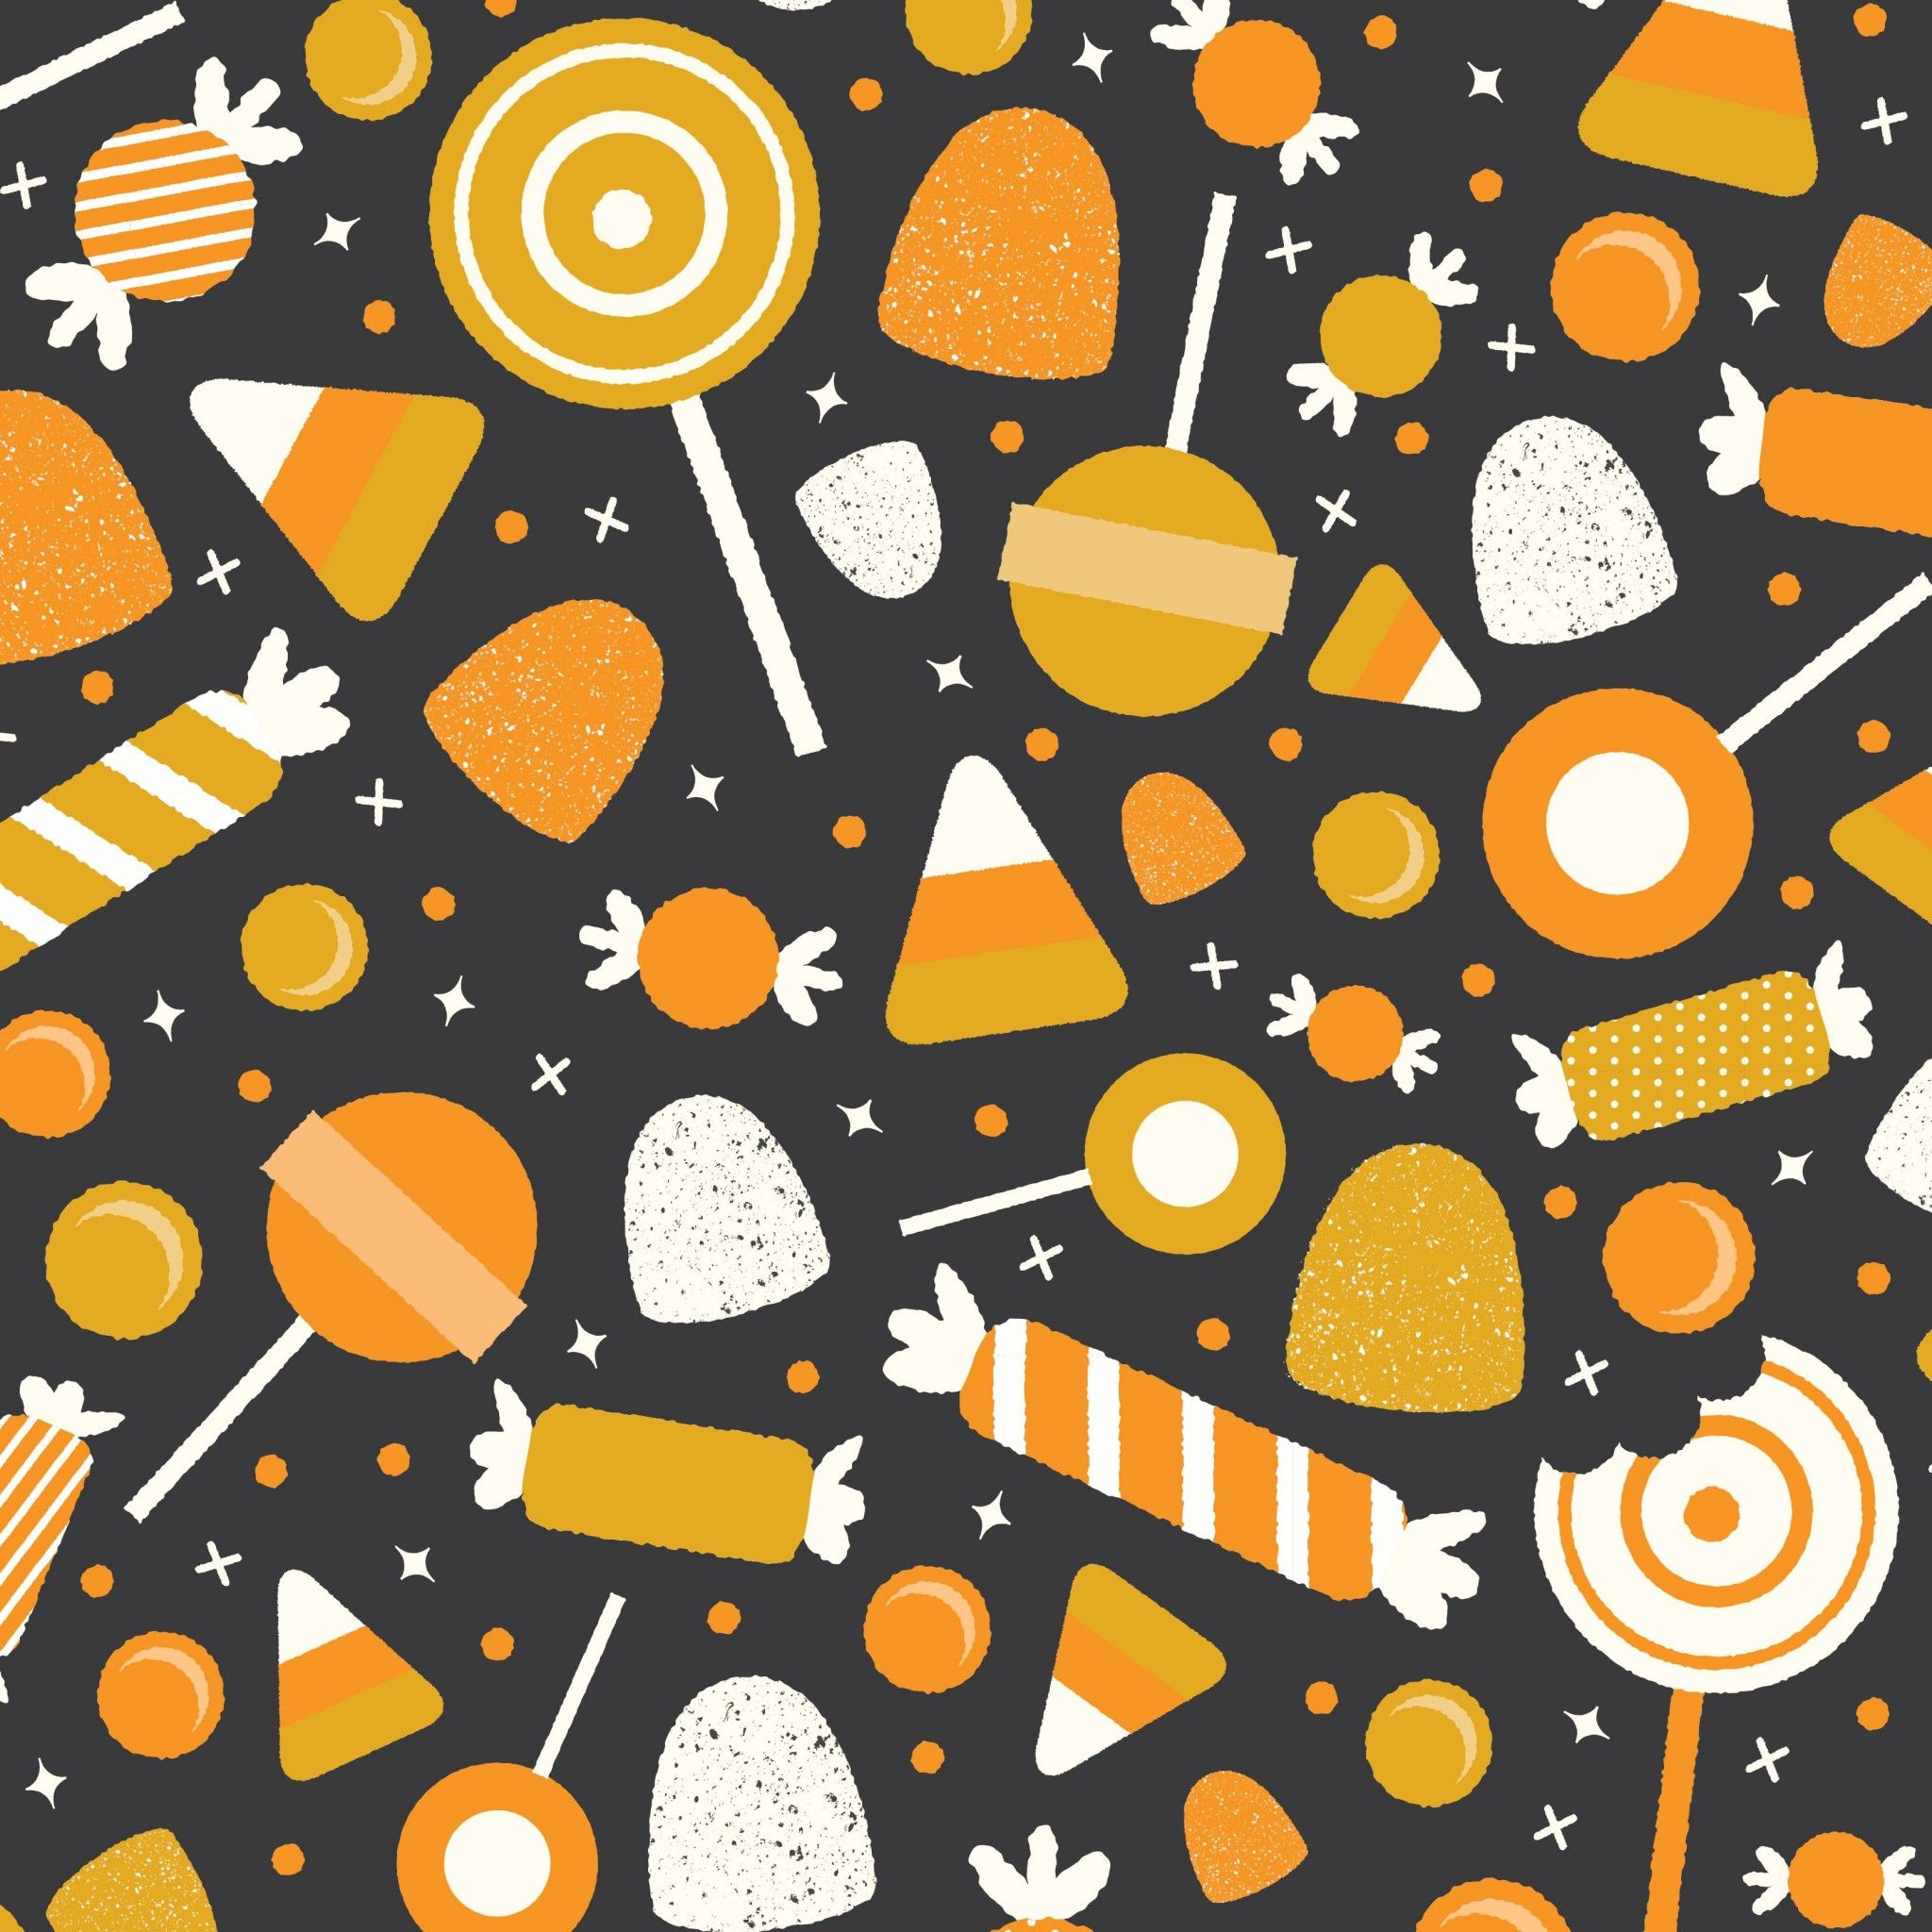 Halloween Candy Tap Image For More Fun Pattern Wallpapers For Iphone Ipad Android Mo Halloween Desktop Wallpaper Halloween Patterns Halloween Wallpaper